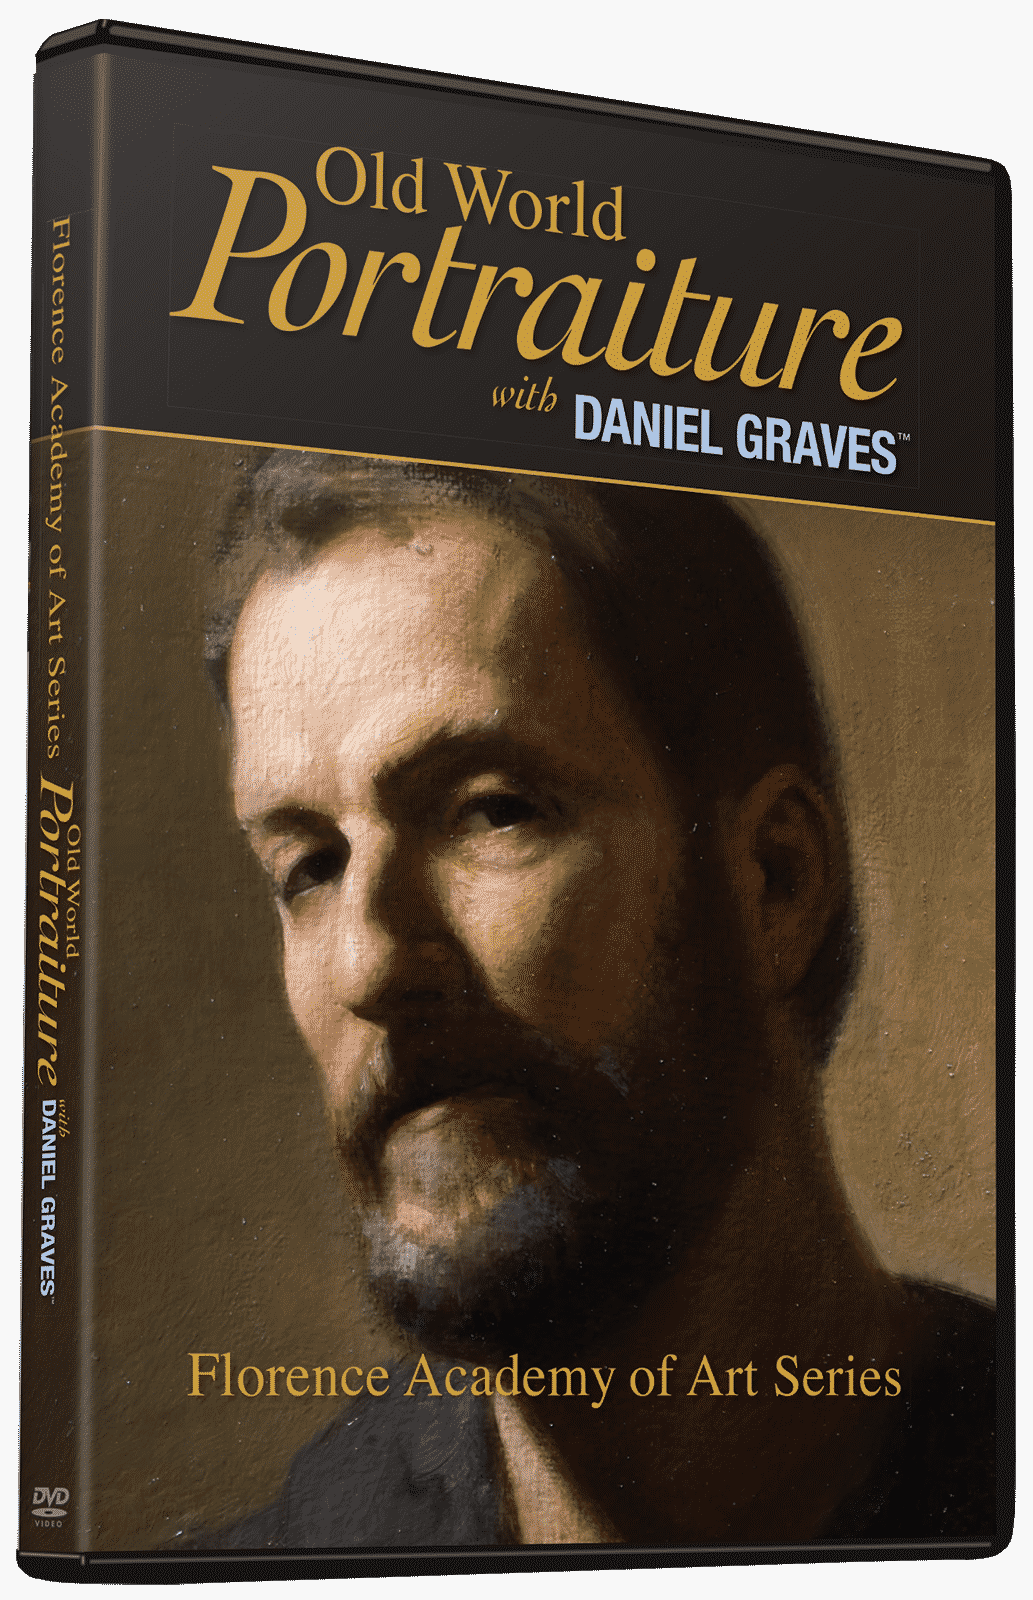 Daniel Graves: Old World Portraiture